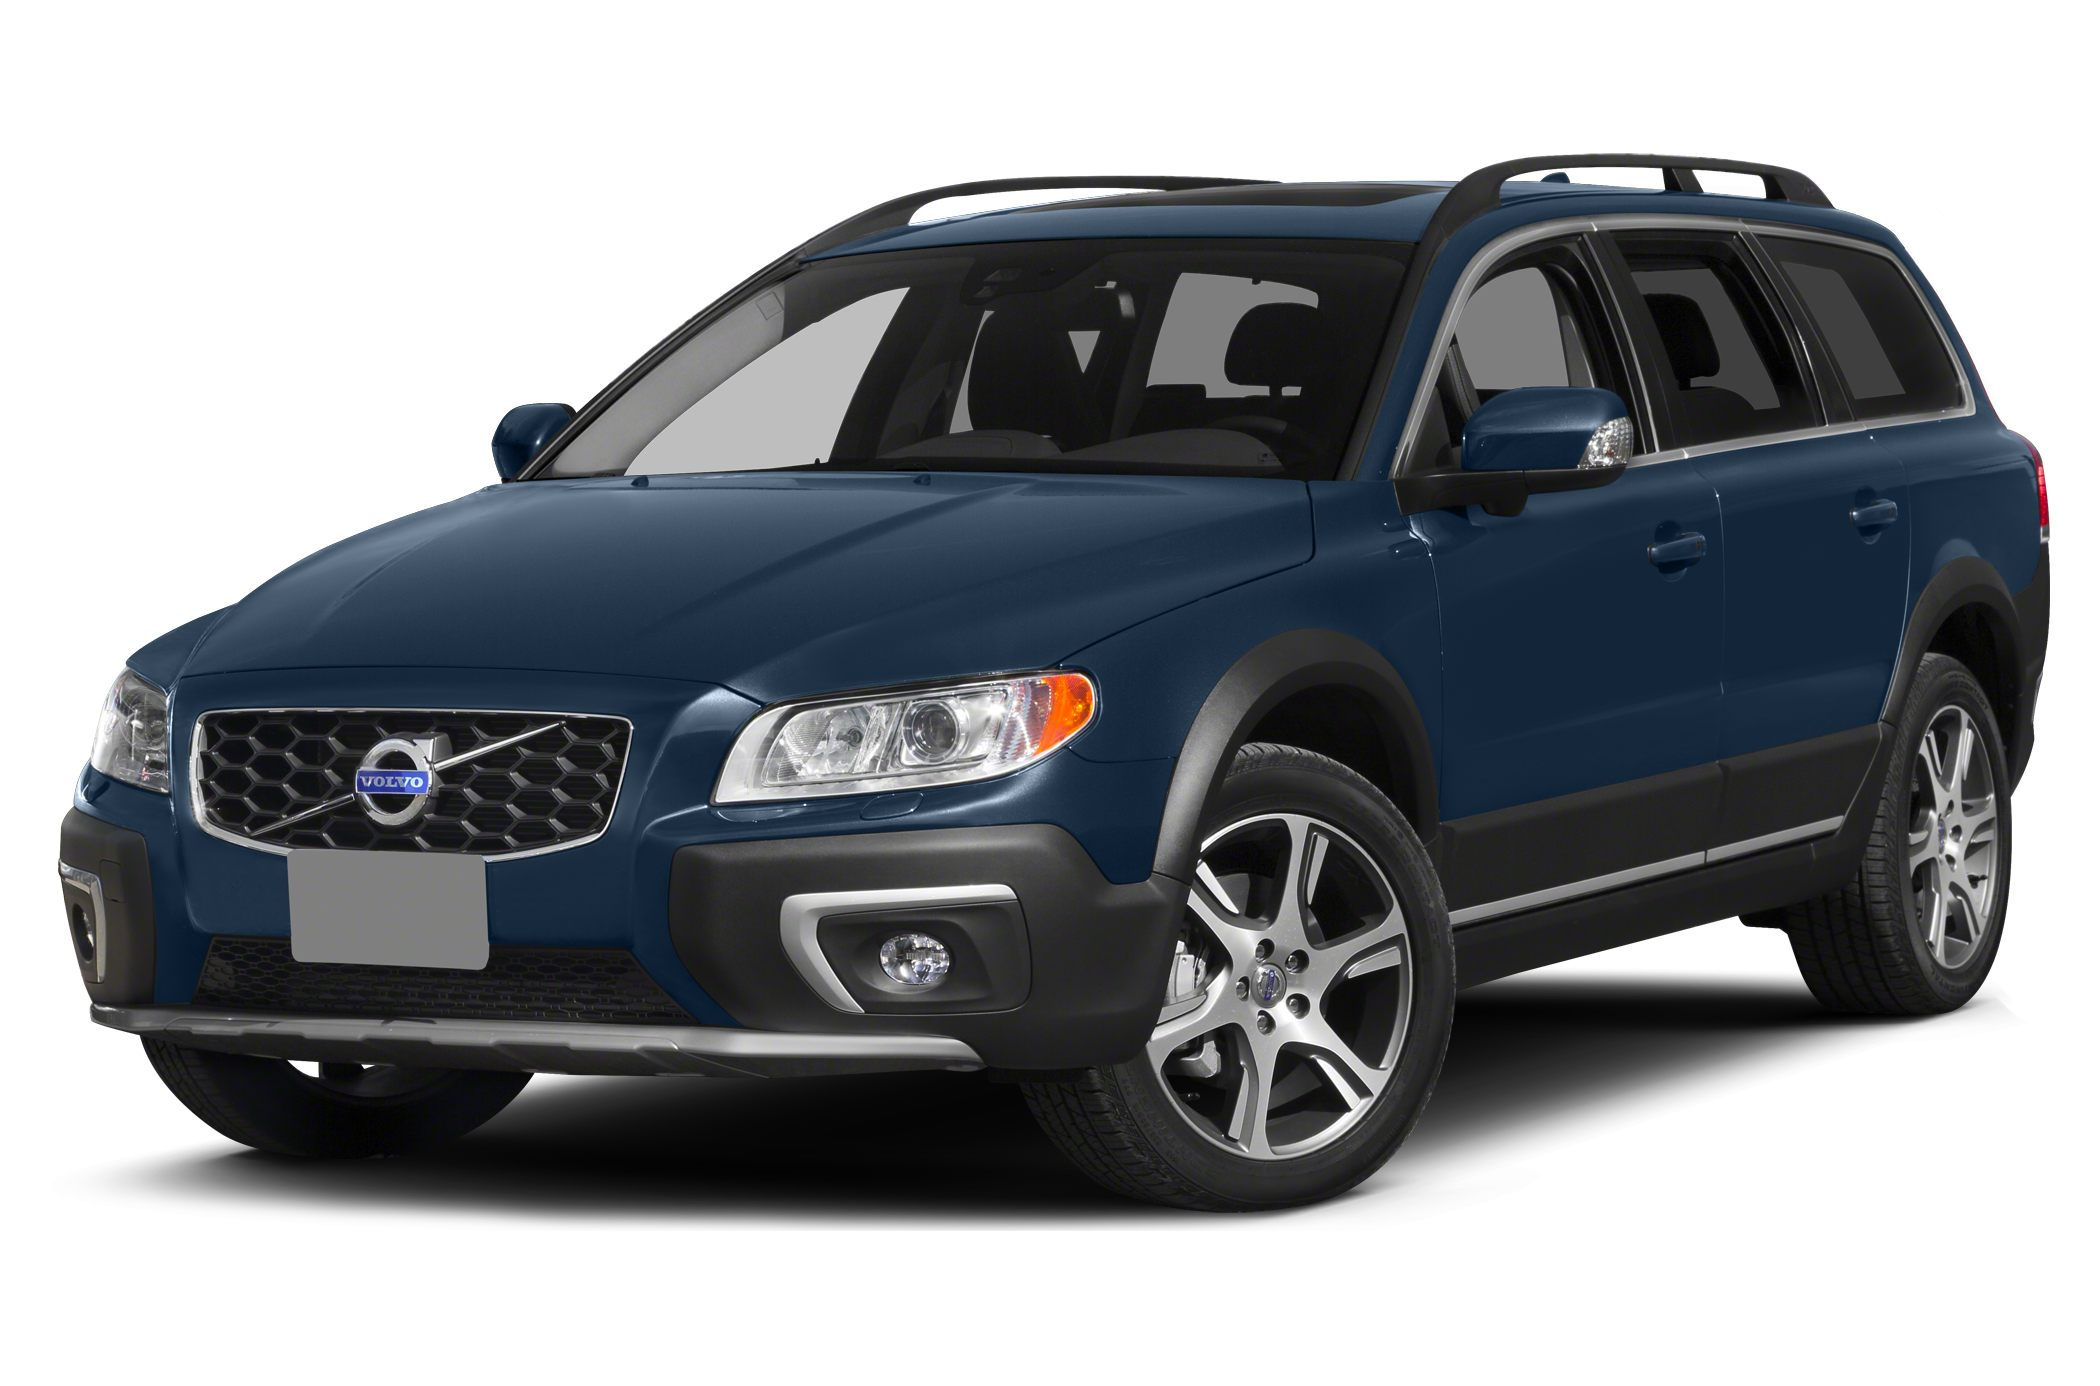 2015 Volvo XC70 T5 Premier Wagon for sale in Bonita Springs for $44,325 with 0 miles